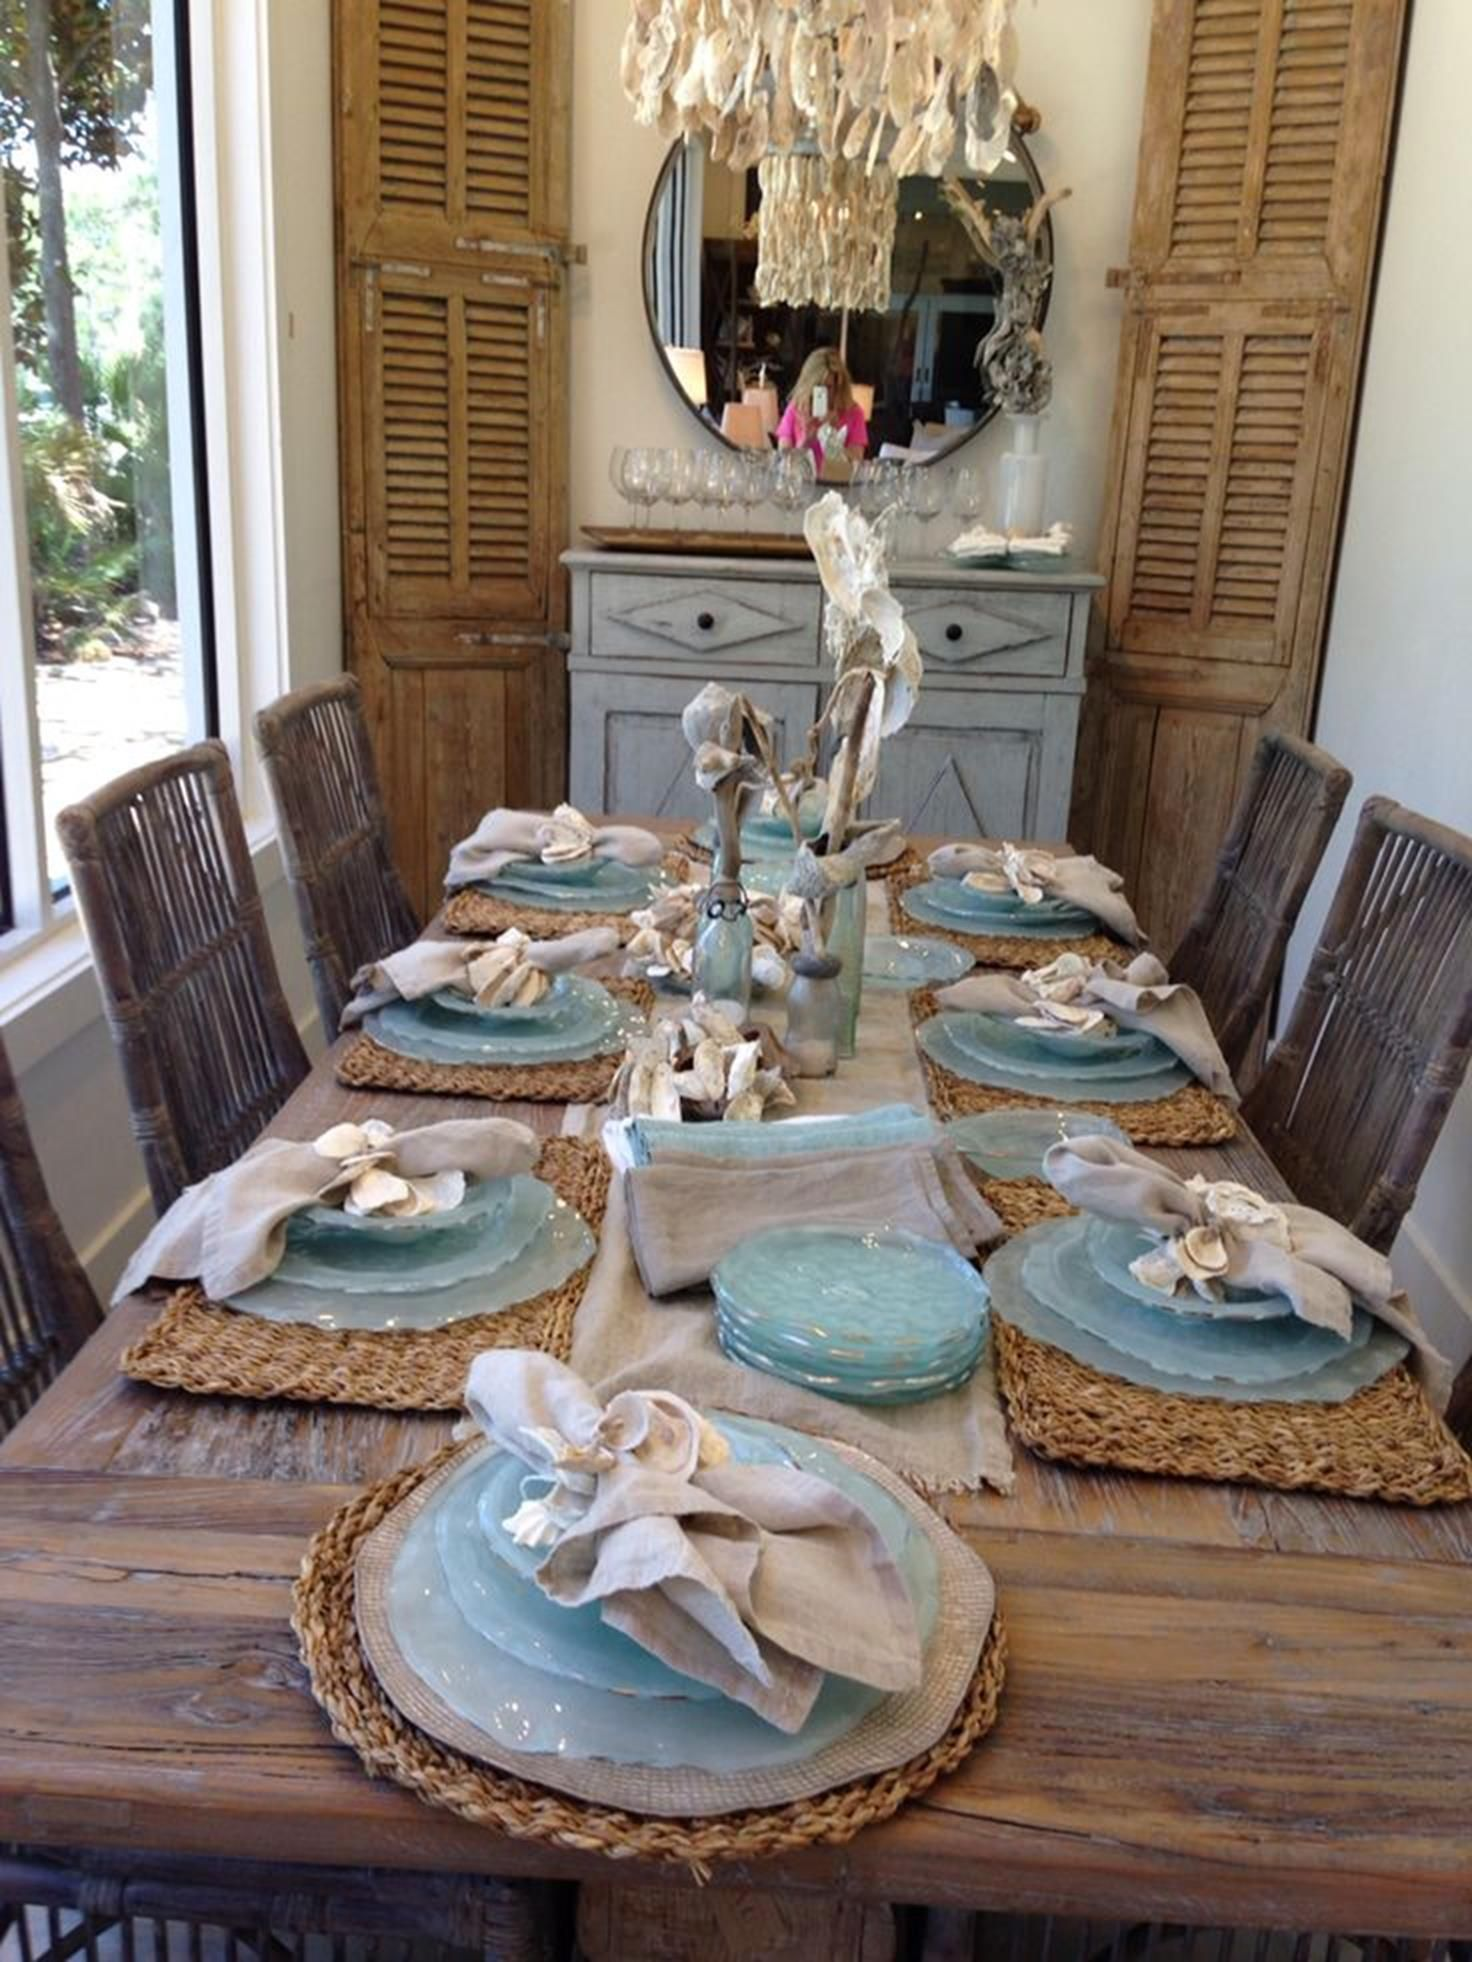 47 Stunning Coastal Kitchen Decorating Table Design With Images